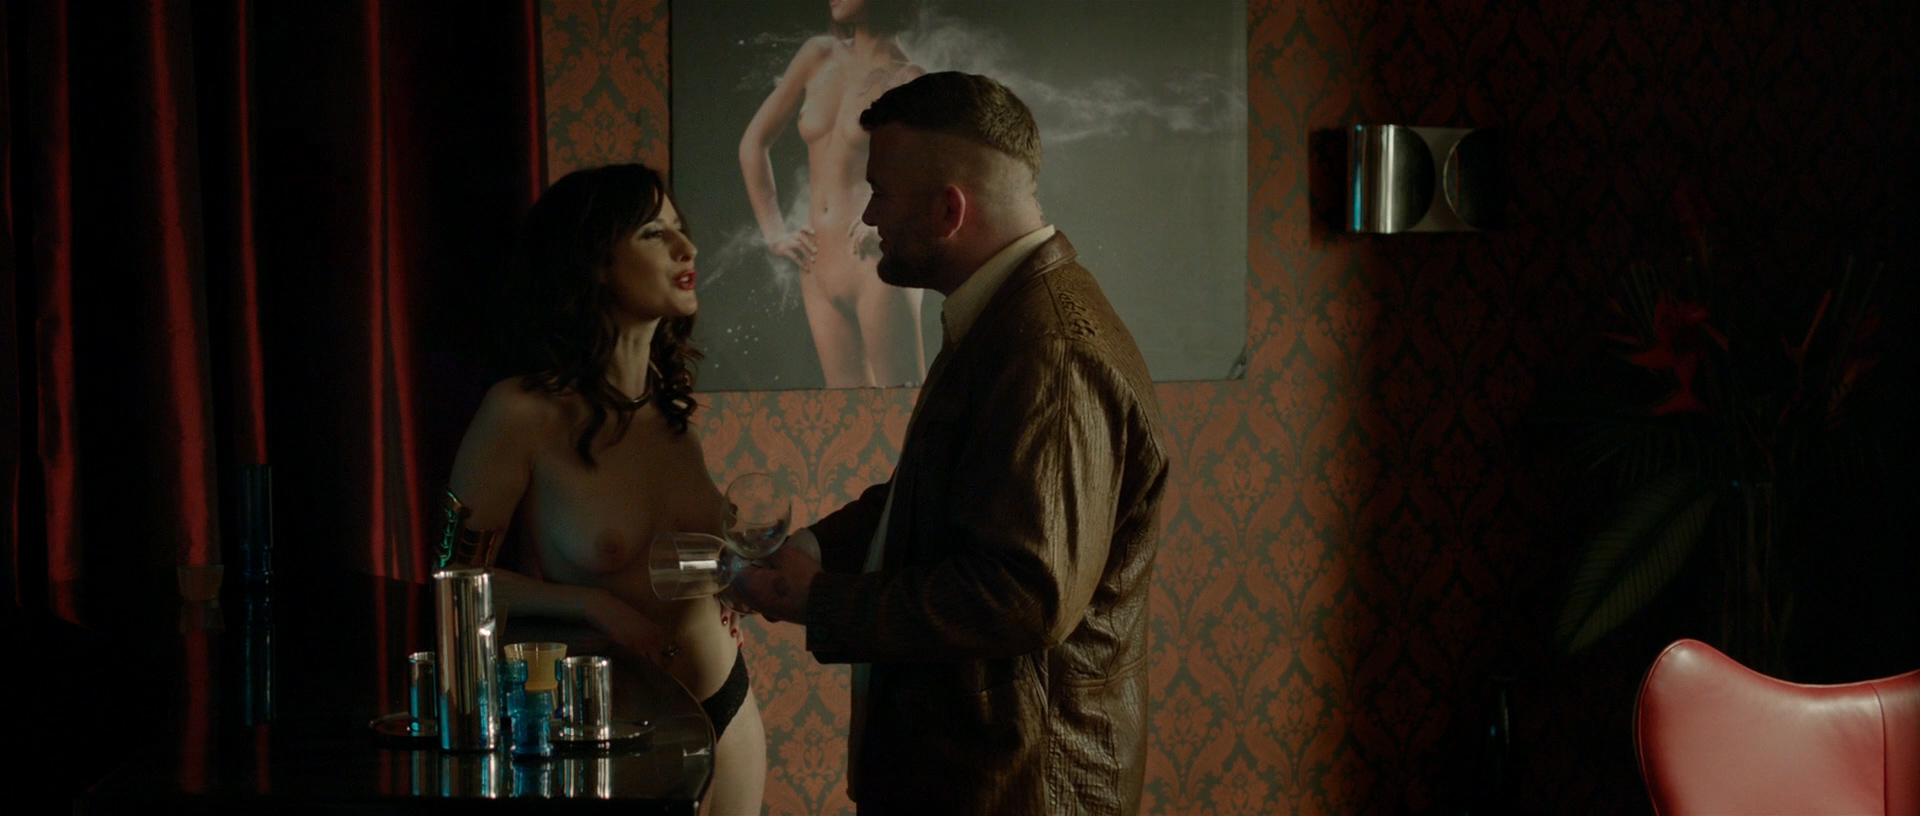 Alexis Knapp nude butt naked and very hot and few others full nude - The Anomaly (2014) hd1080p (12)